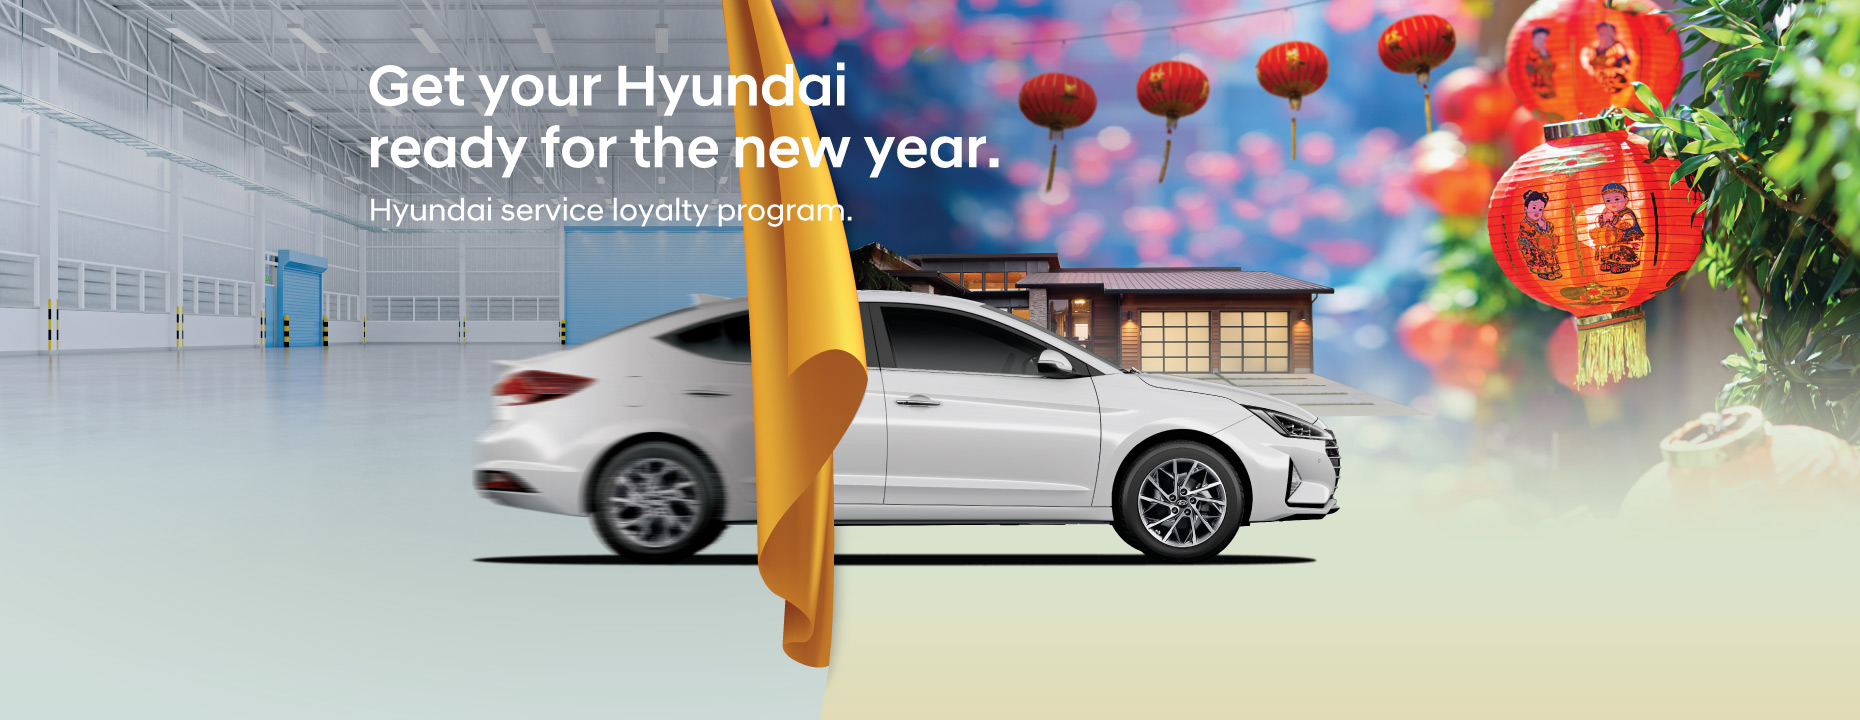 Hyundai service loyalty program | Get your Hyundai ready for the new year. Up to 20% off on selected parts* | 10% off on labour charges* | Free 20 points vehicle inspection. | Hyundai loyalty program is now open for vehicles of 4 years and above* Terms and conditions apply. Promotion period : 24 December 2020 - 28 February 2021.